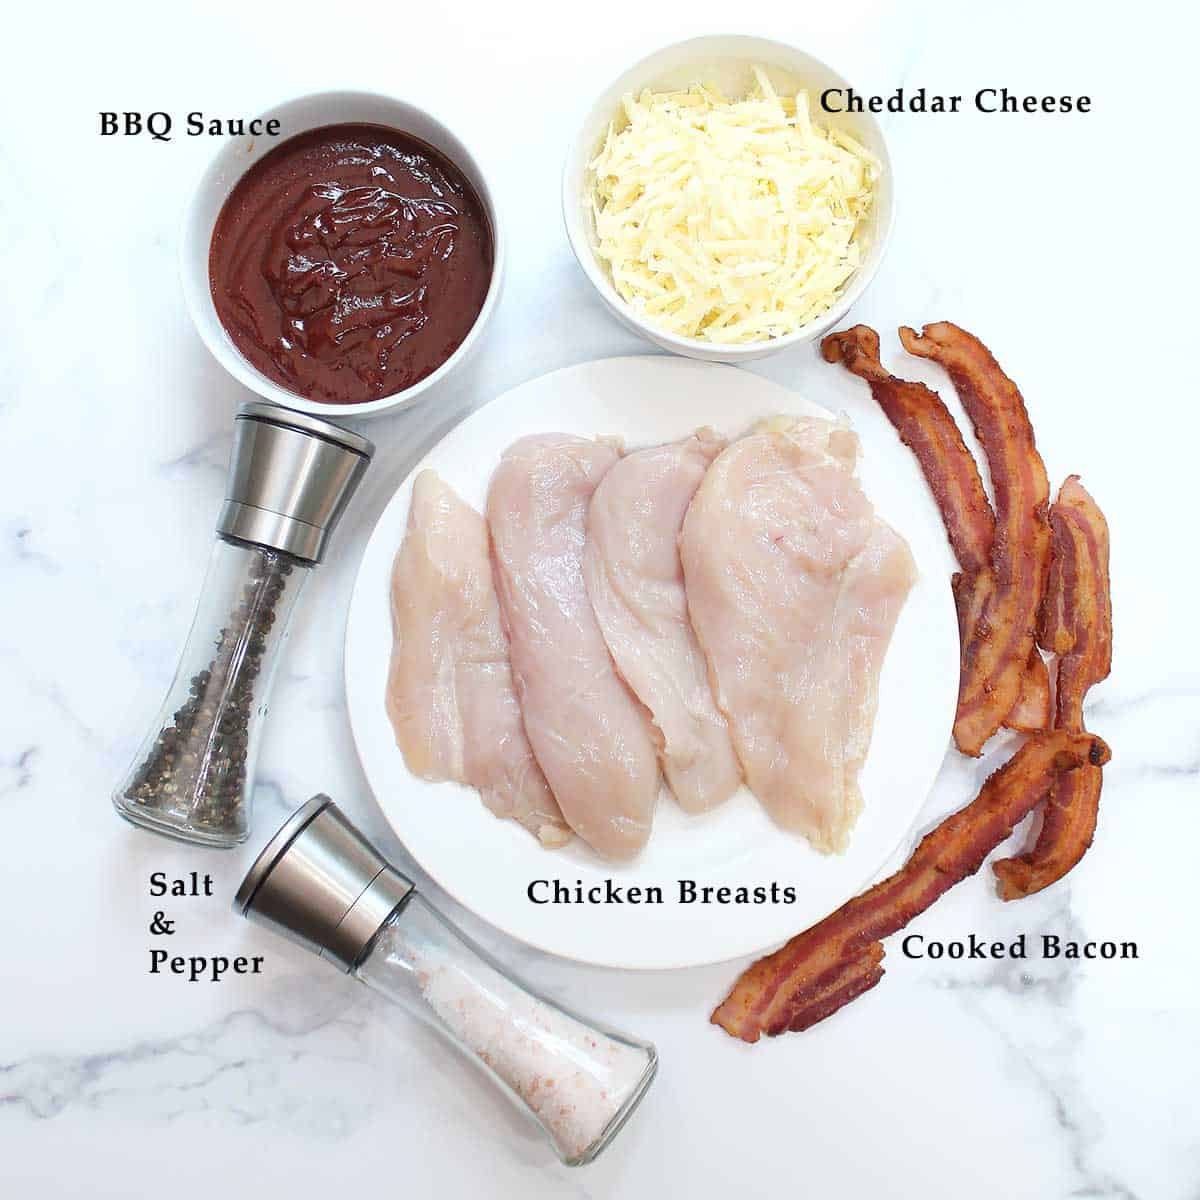 BBQ Baked Chicken Breast ingredients on white table.